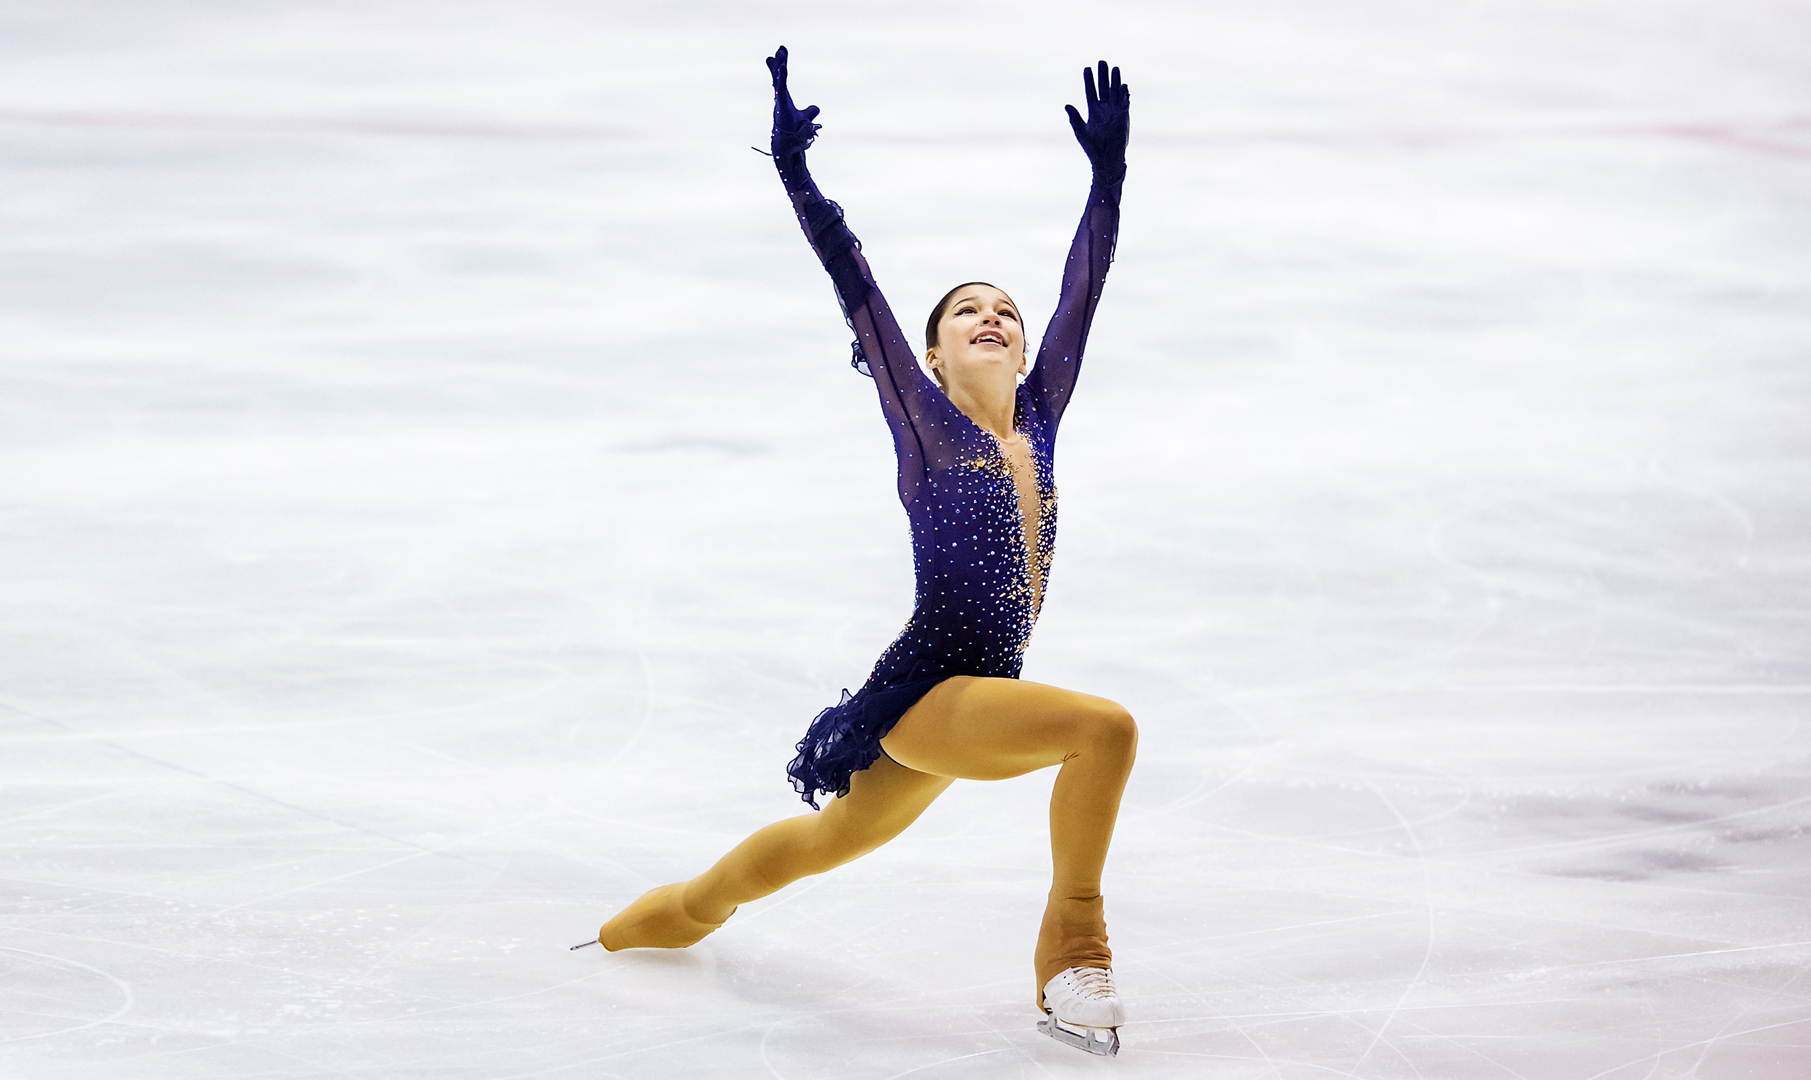 Alysa Liu at the U.S. Championships in 2019